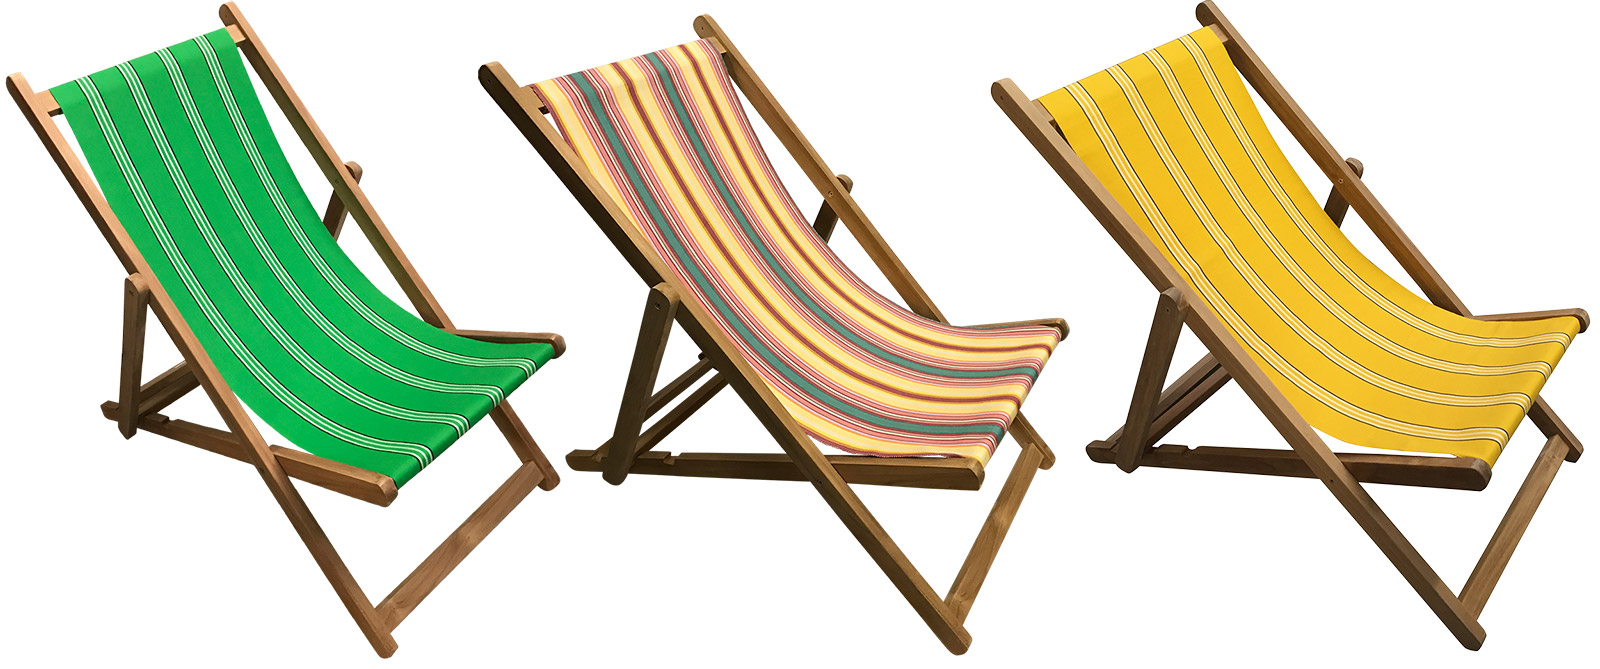 Deckchairs | Buy Folding Wooden Deck Chairs